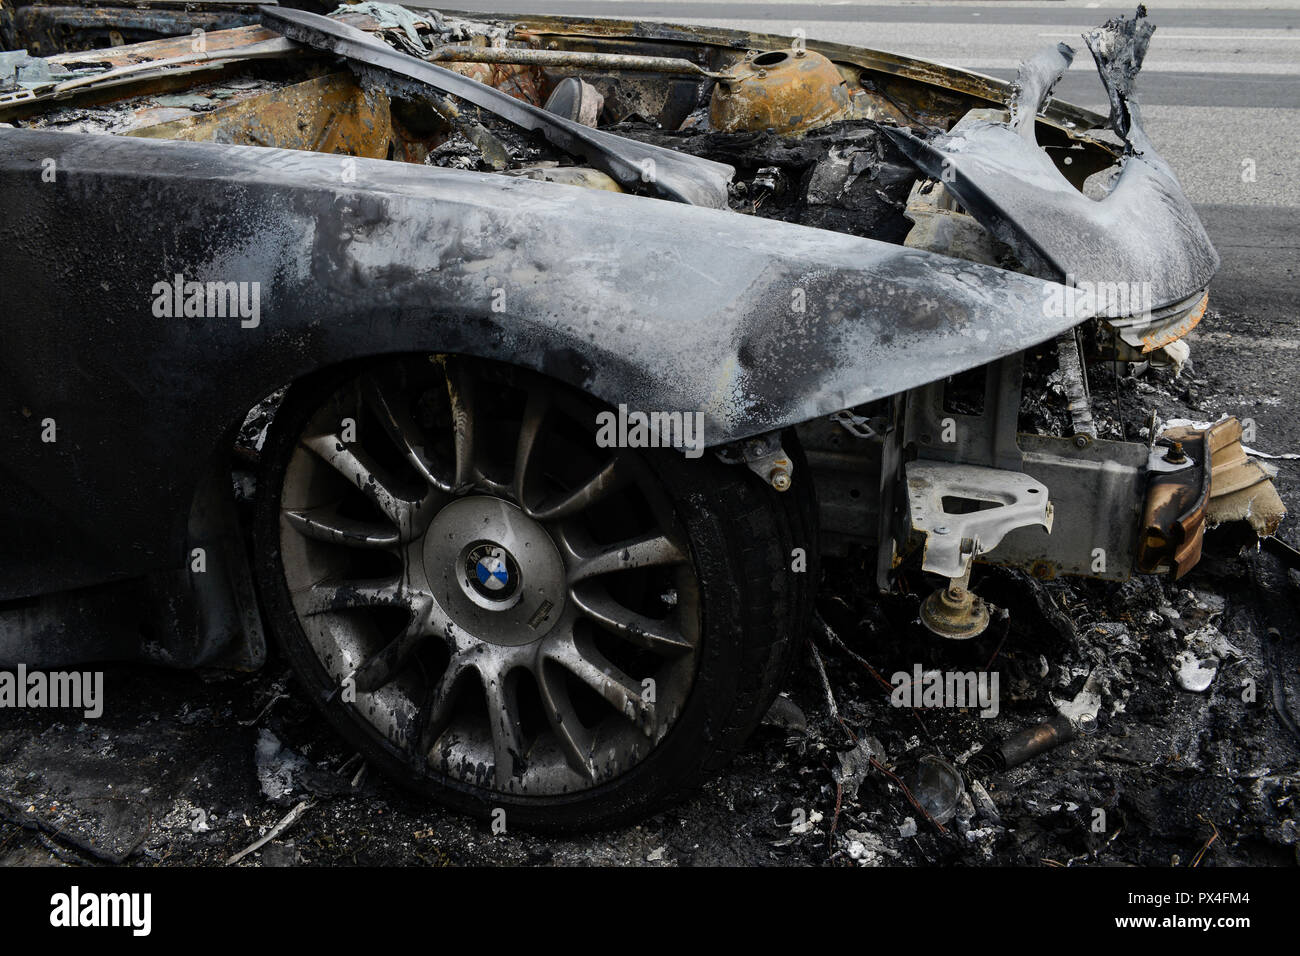 GERMANY, Hamburg, G-20 summit, riots, radicals have burned cars on the streets, burned cabriolet BMW roadster  / DEUTSCHLAND, Hamburg, G20 Gipfel in Hamburg, Randale, abgebrannte Autos Stock Photo